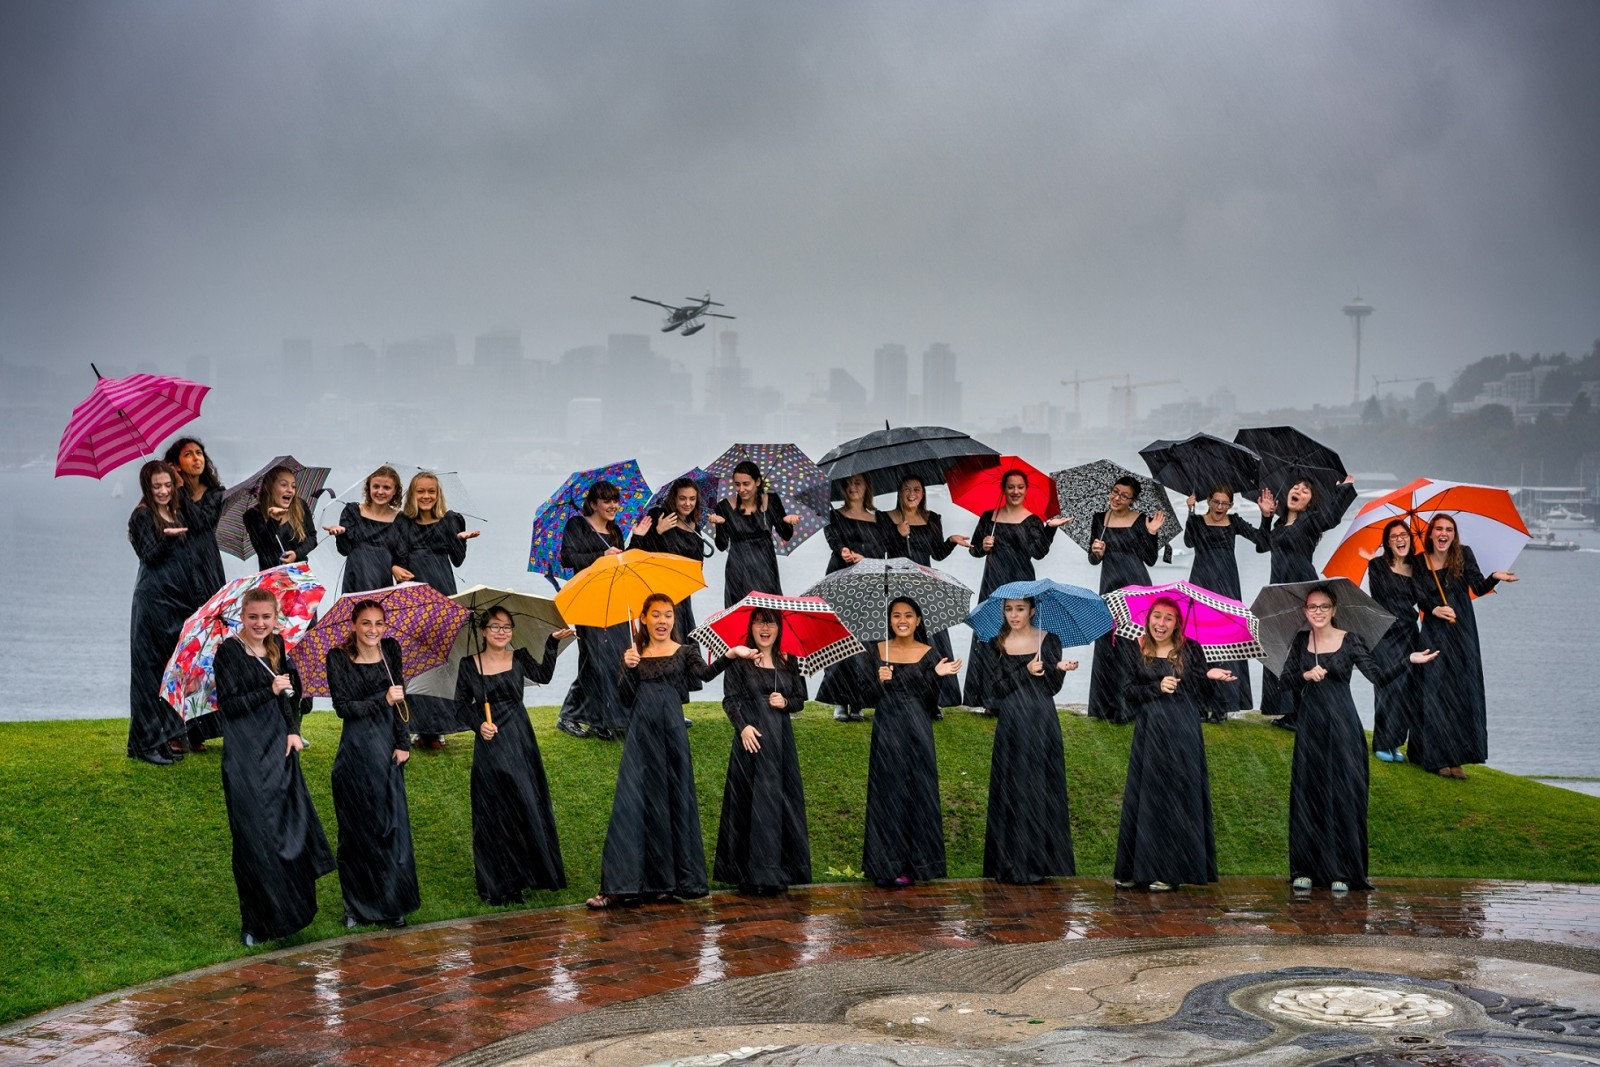 Seattle Girls Choir. Prime Voci at Gas Works Park, Seattle